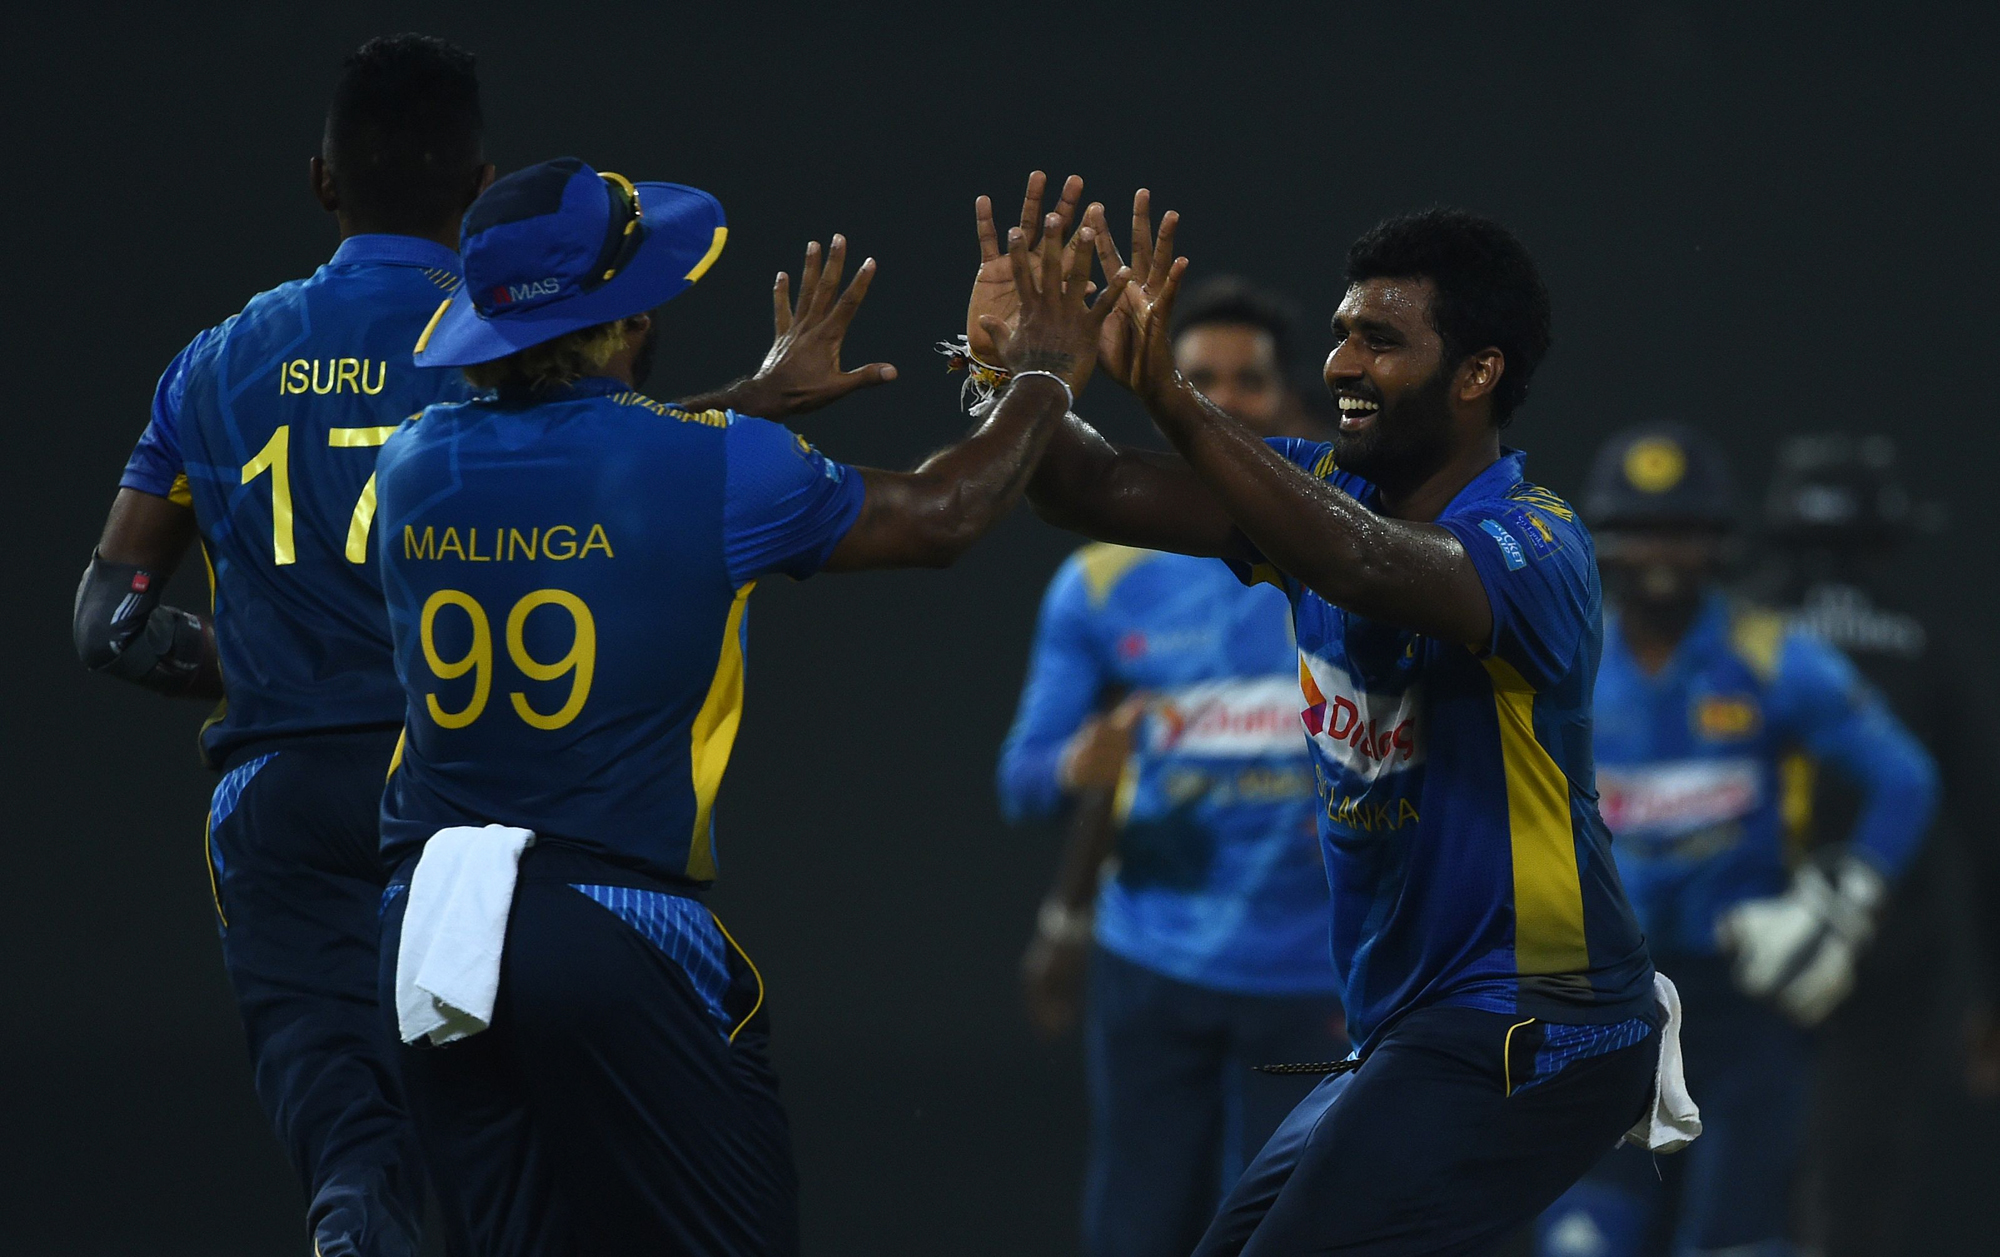 Sri Lankan cricket captain Thisara Perera (R) celebrates with teammates after he dismissed England cricket captain Eoin Morgan during the international Twenty20 cricket match between Sri Lanka and England at the R. Peremadasa Stadium in Colombo on October